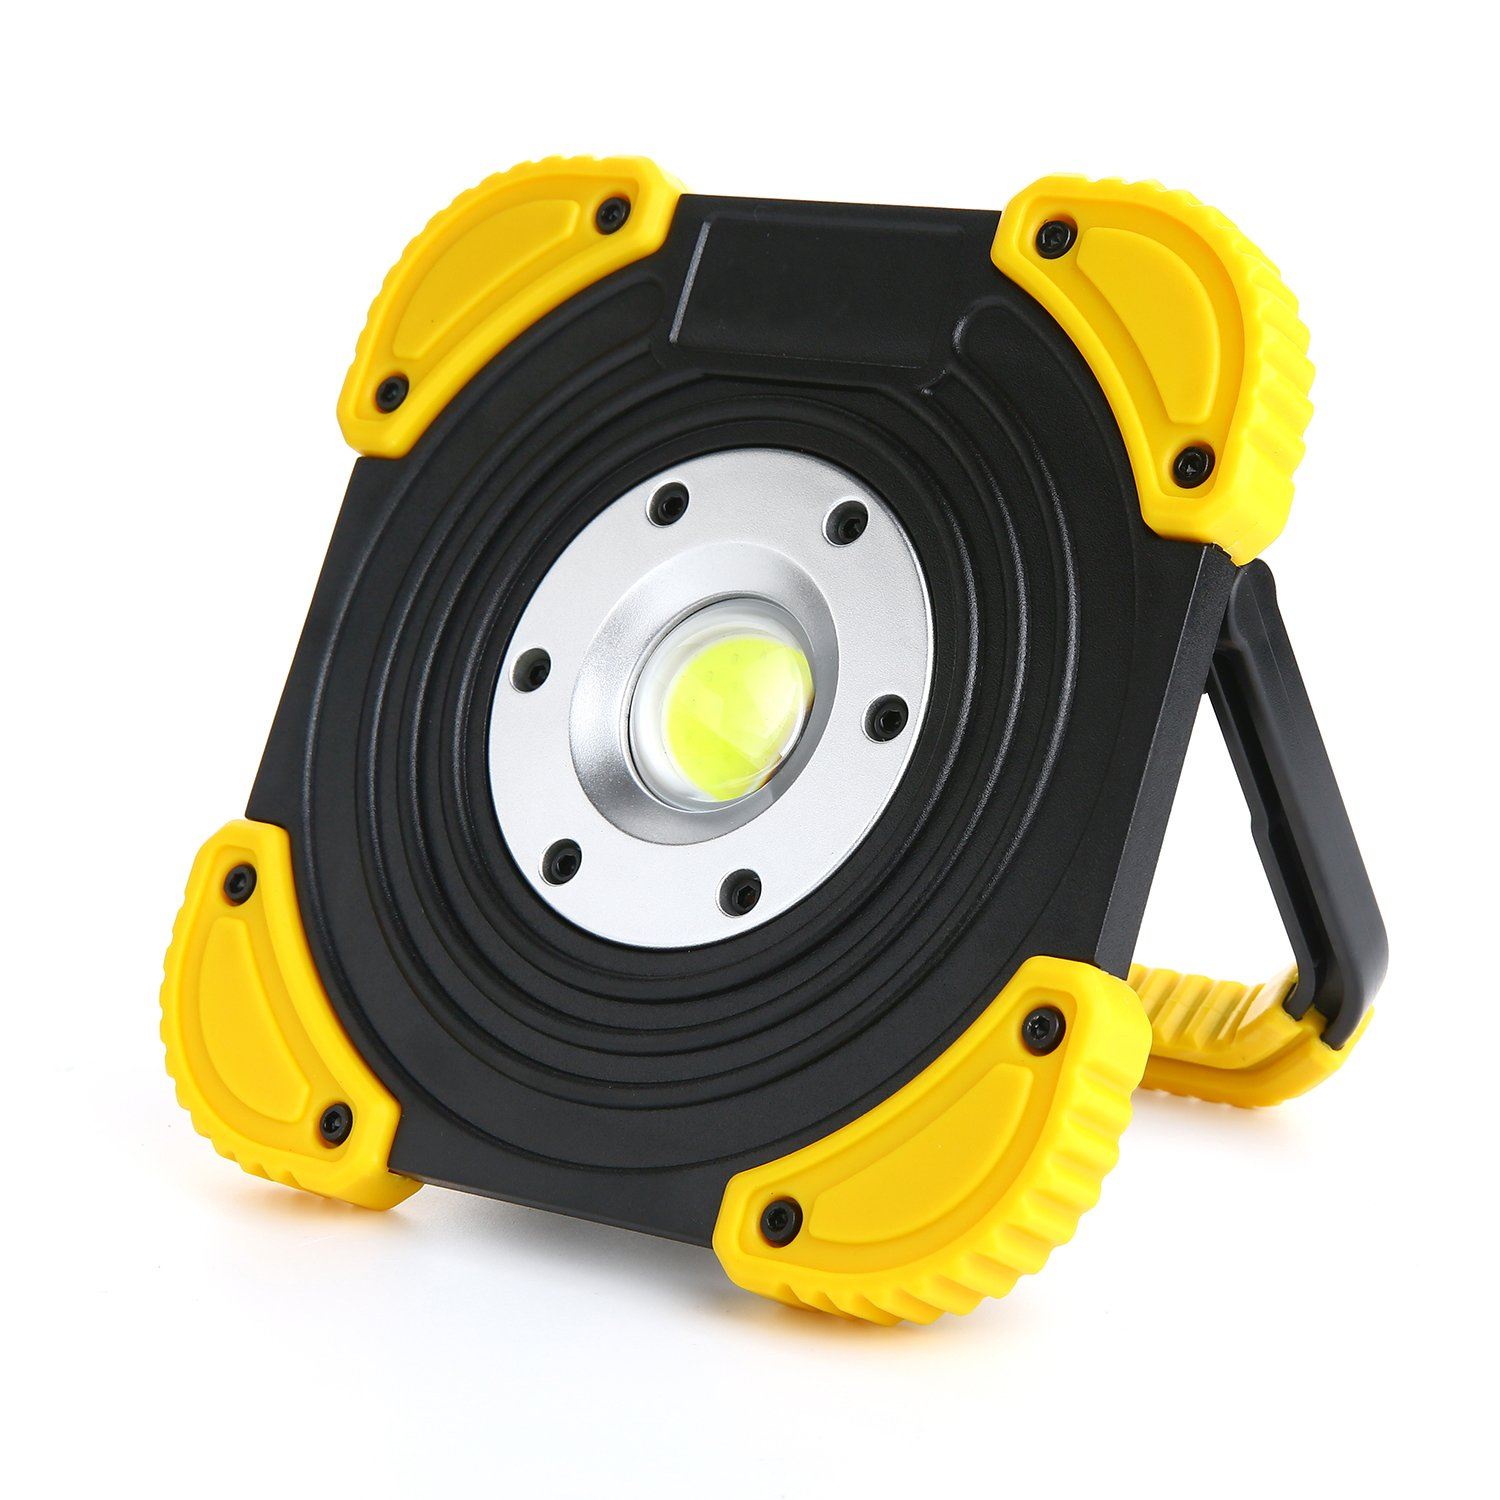 Portable LED Work Light with Stand, Cordless Lights for ...